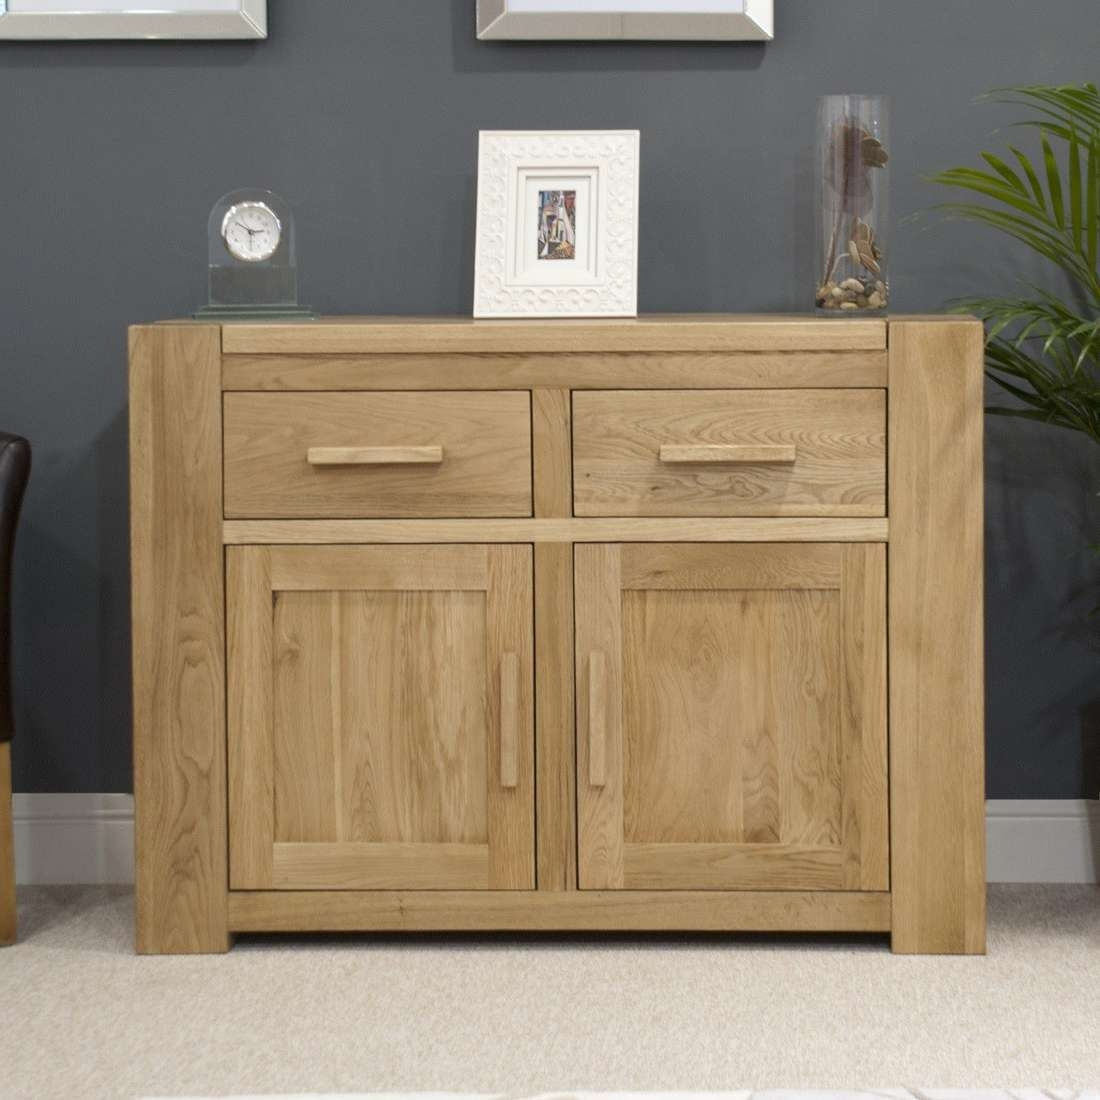 Trend Solid Oak Small 2 Door Sideboard | Oak Furniture Uk Within Sideboards Furniture (View 18 of 20)